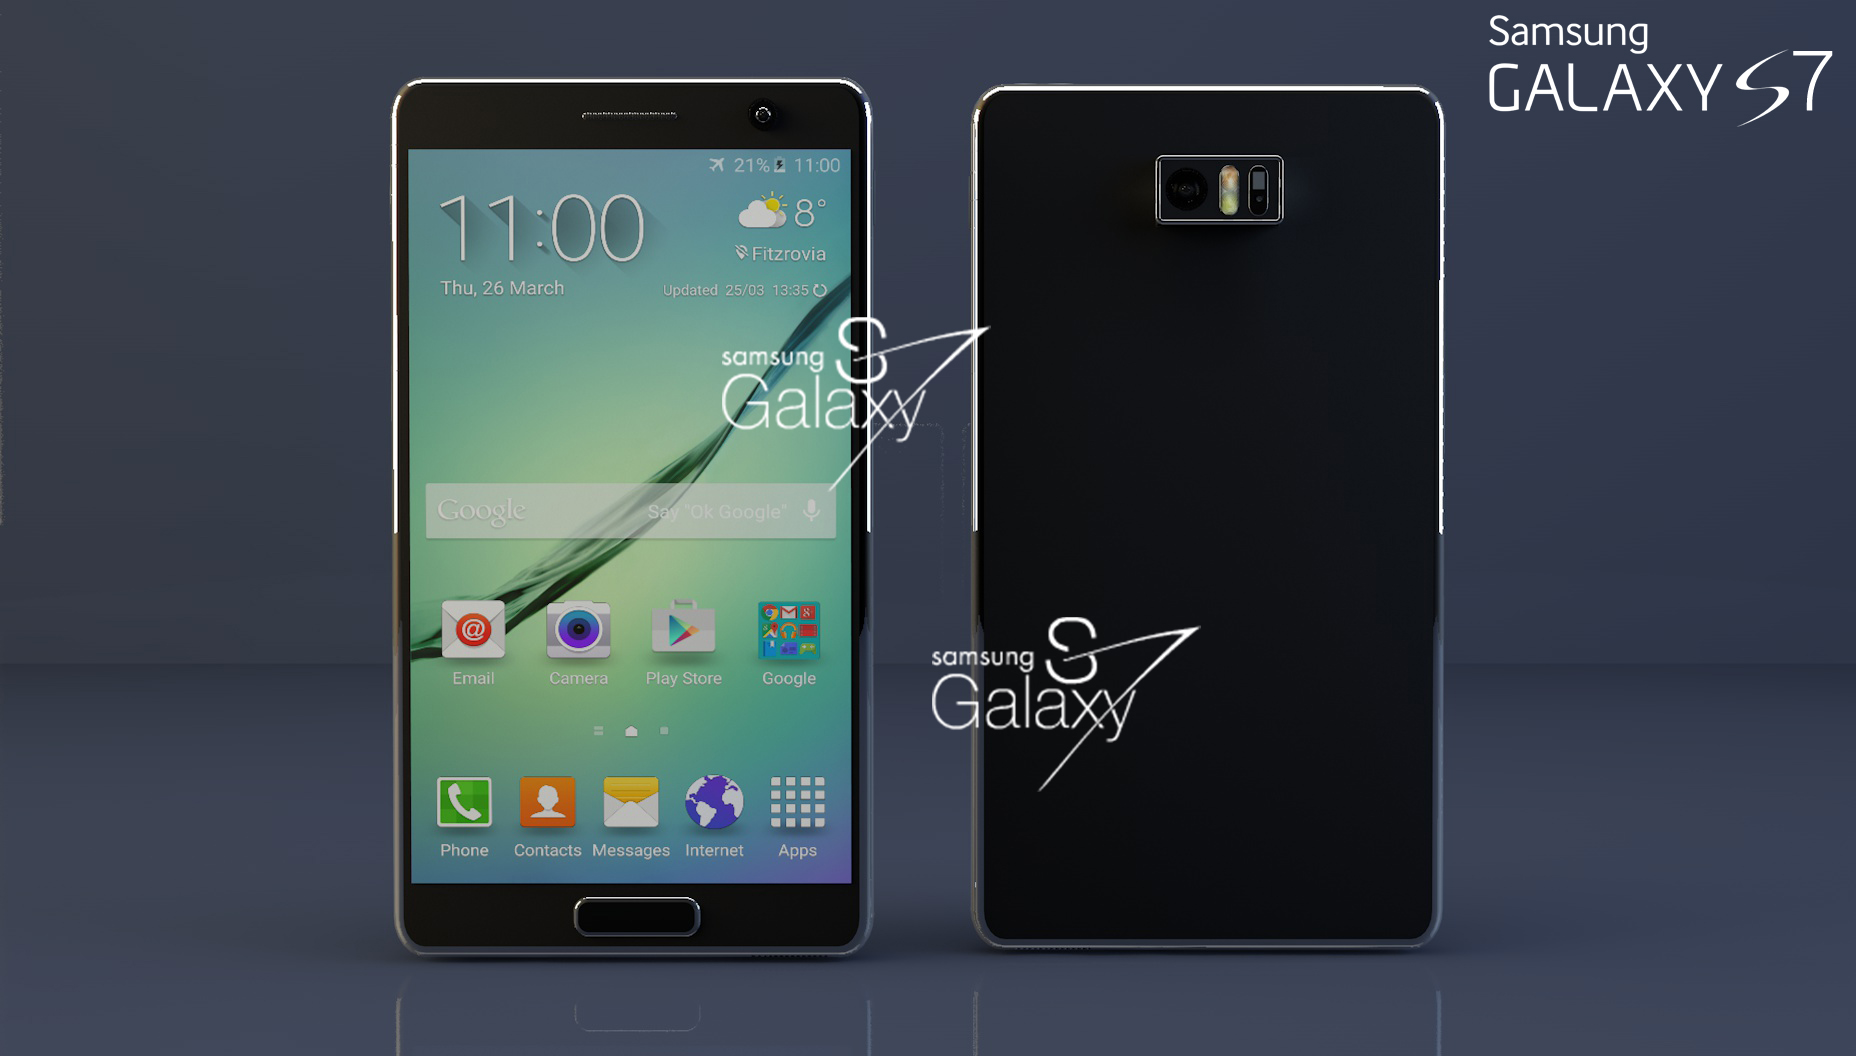 galaxy s7 release date, galaxy s7 concept, galaxy s7 tablet, galaxy s7 gsmarena, galaxy s7 helicopter, galaxy s7 edge, galaxy s7 review, samsung galaxy s7 camera,